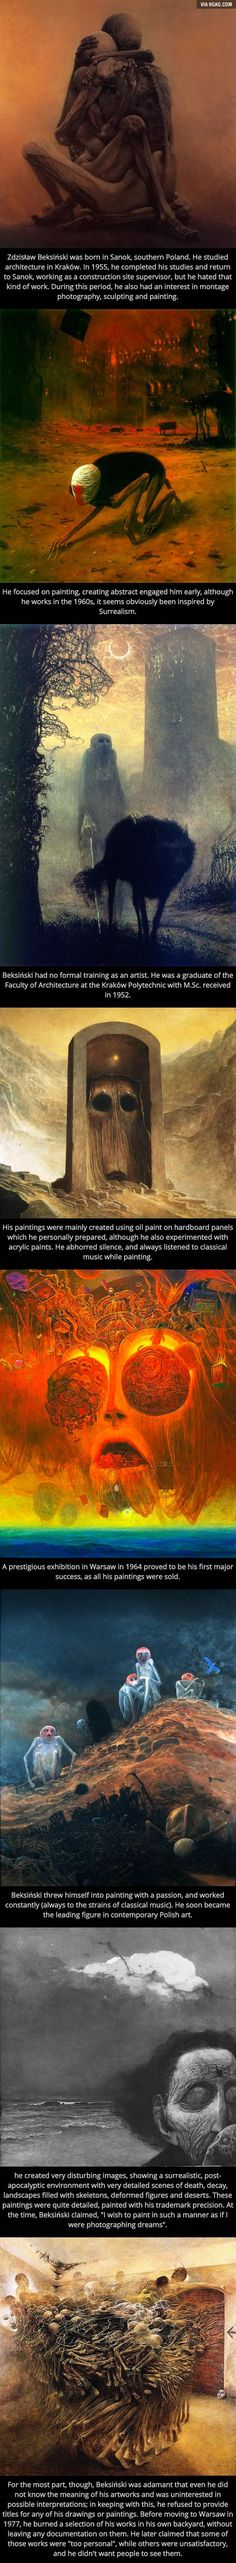 The Beautiful and Horrific Artwork of Zdzisław Beksiński - www.viralpx.com | www.facebook.com/viralpx